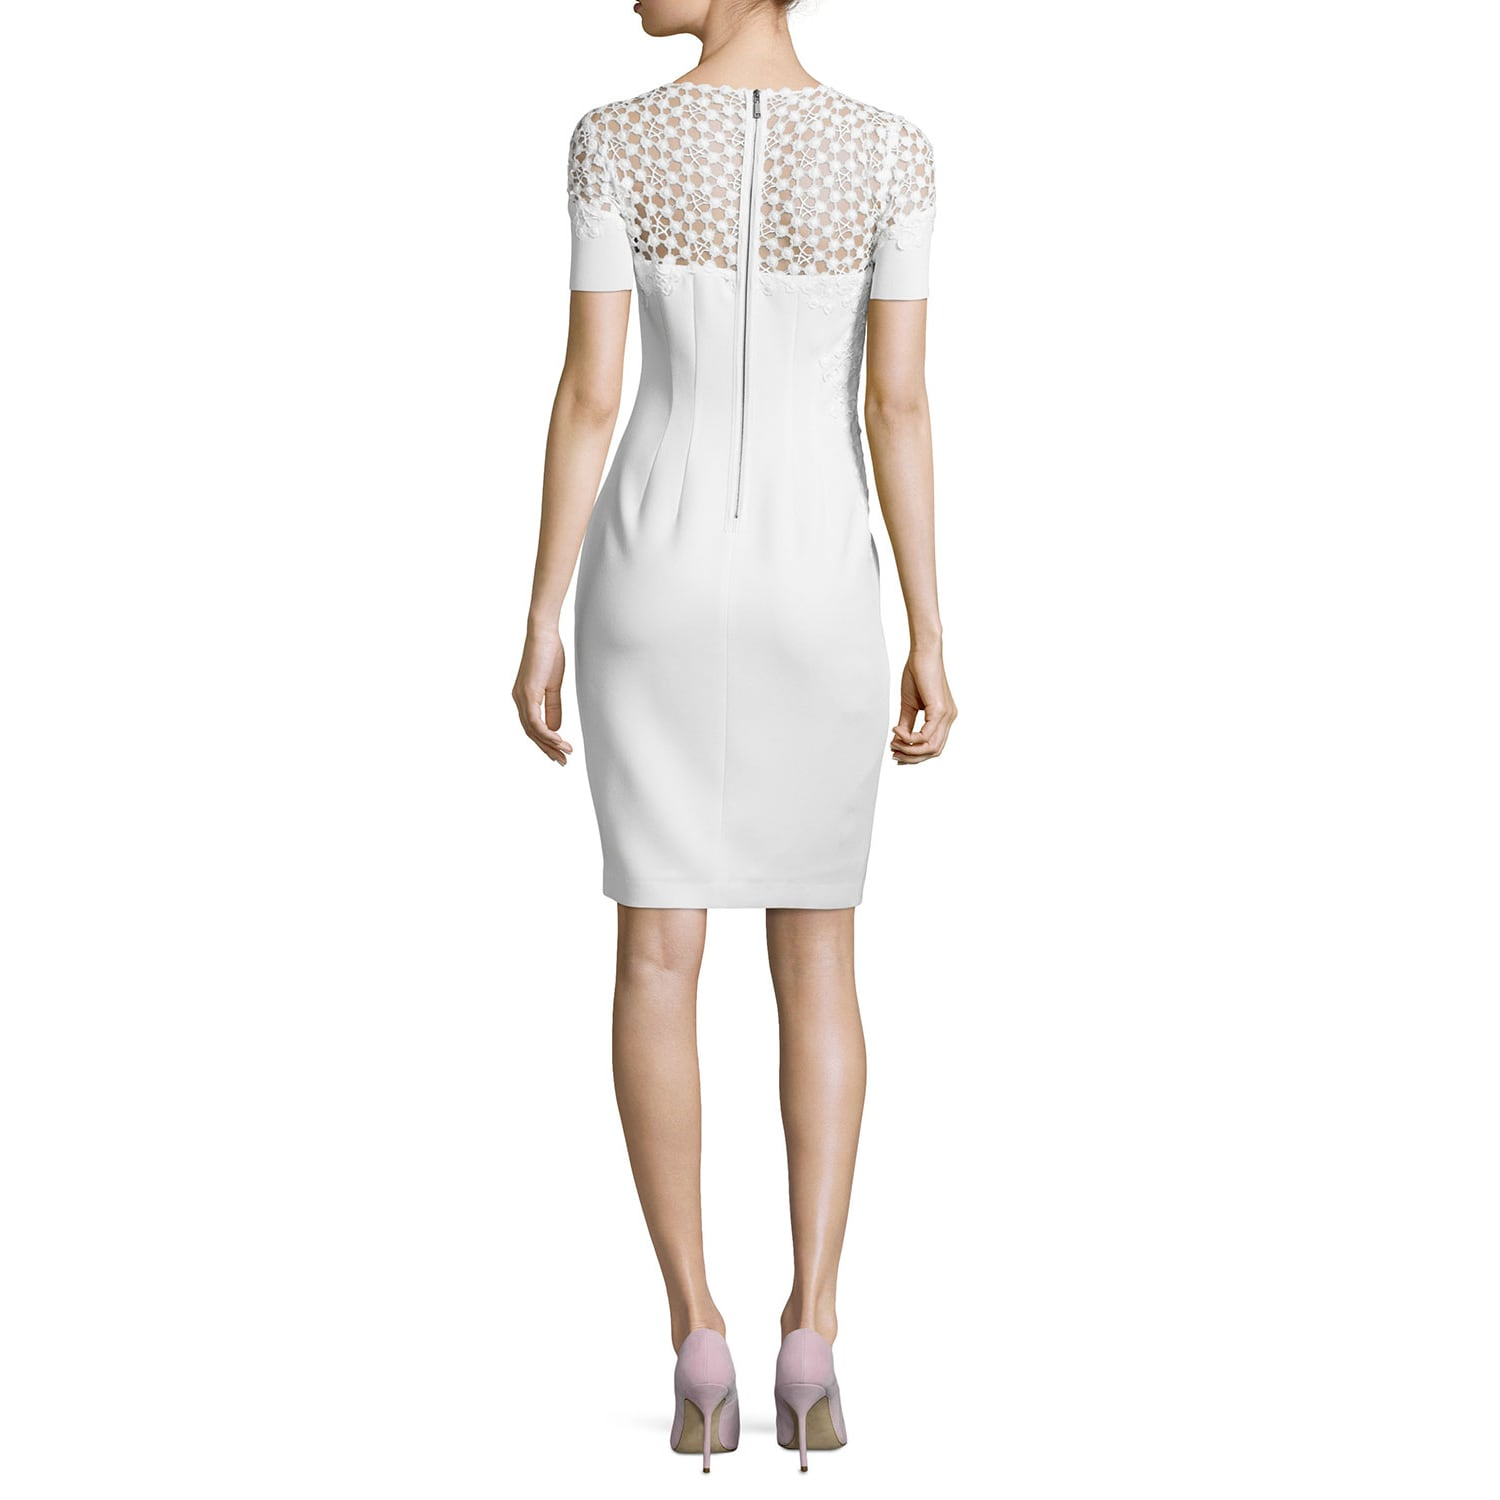 81ed6b5eb7af Shop Elie Tahari Women's Suzie Lace Trim Dress - Free Shipping Today -  Overstock - 12730084